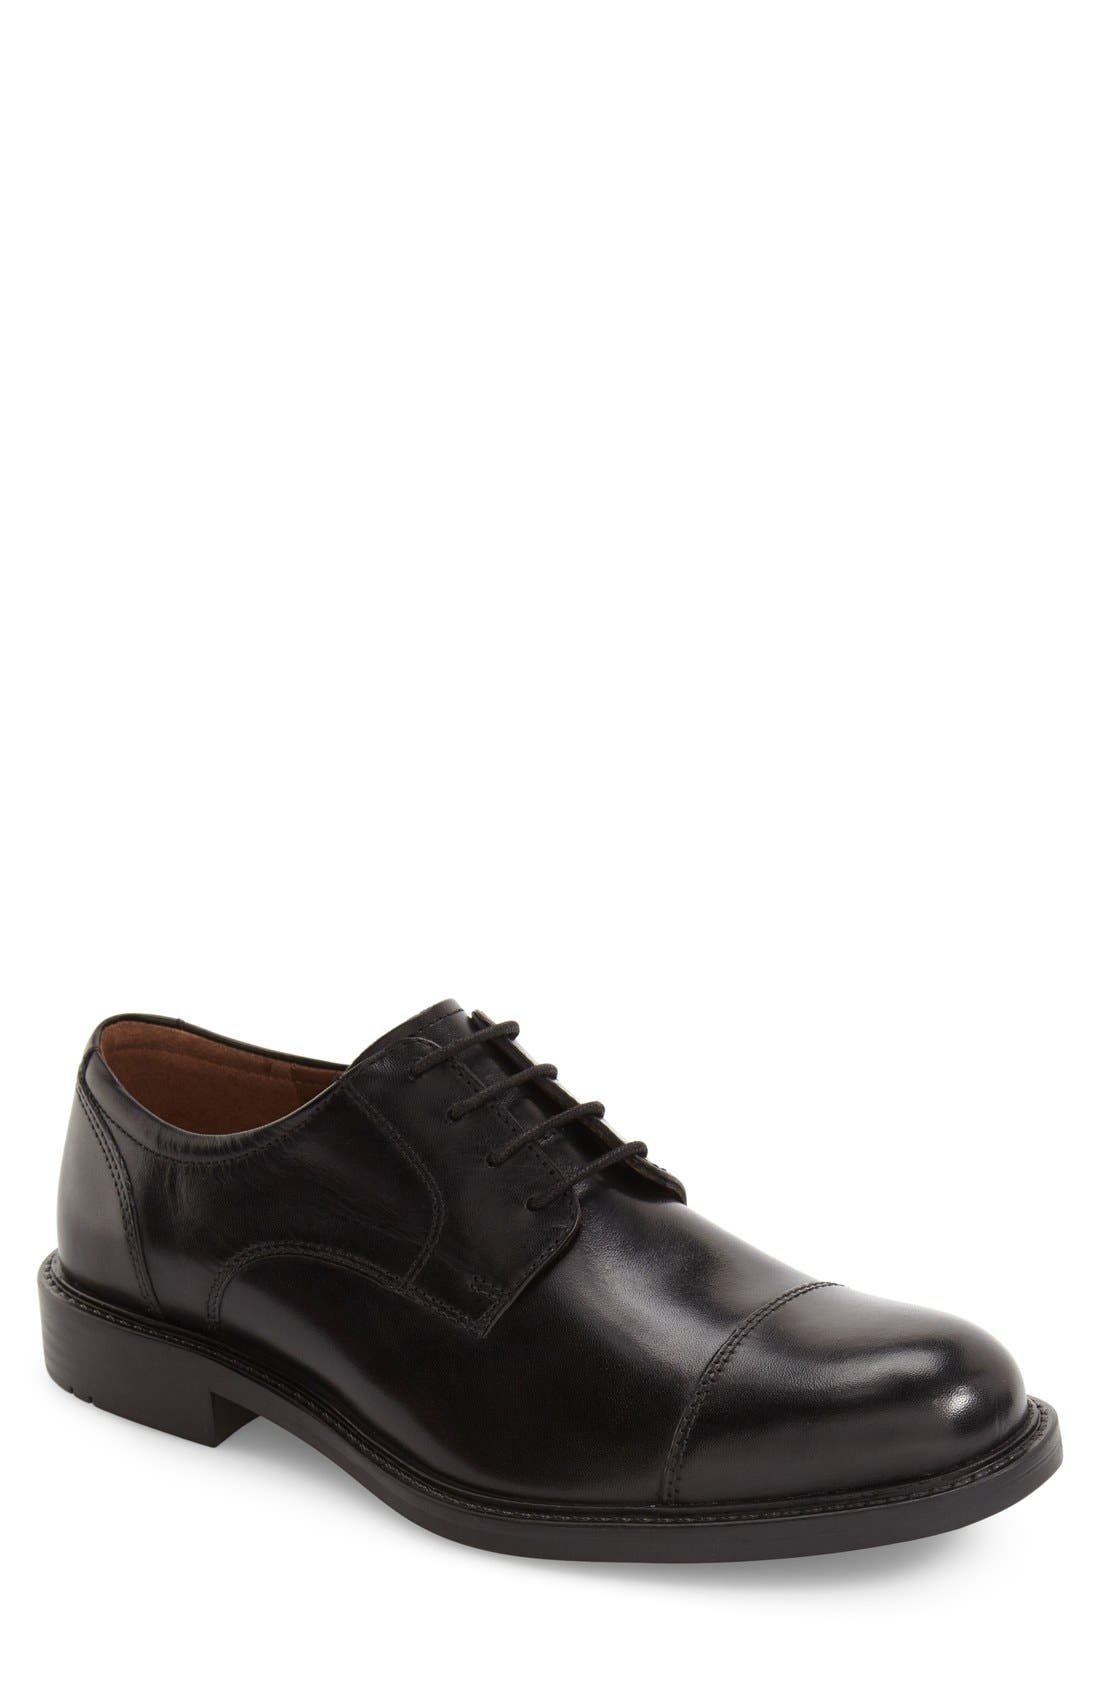 Tabor Cap Toe Derby,                             Main thumbnail 1, color,                             BLACK LEATHER